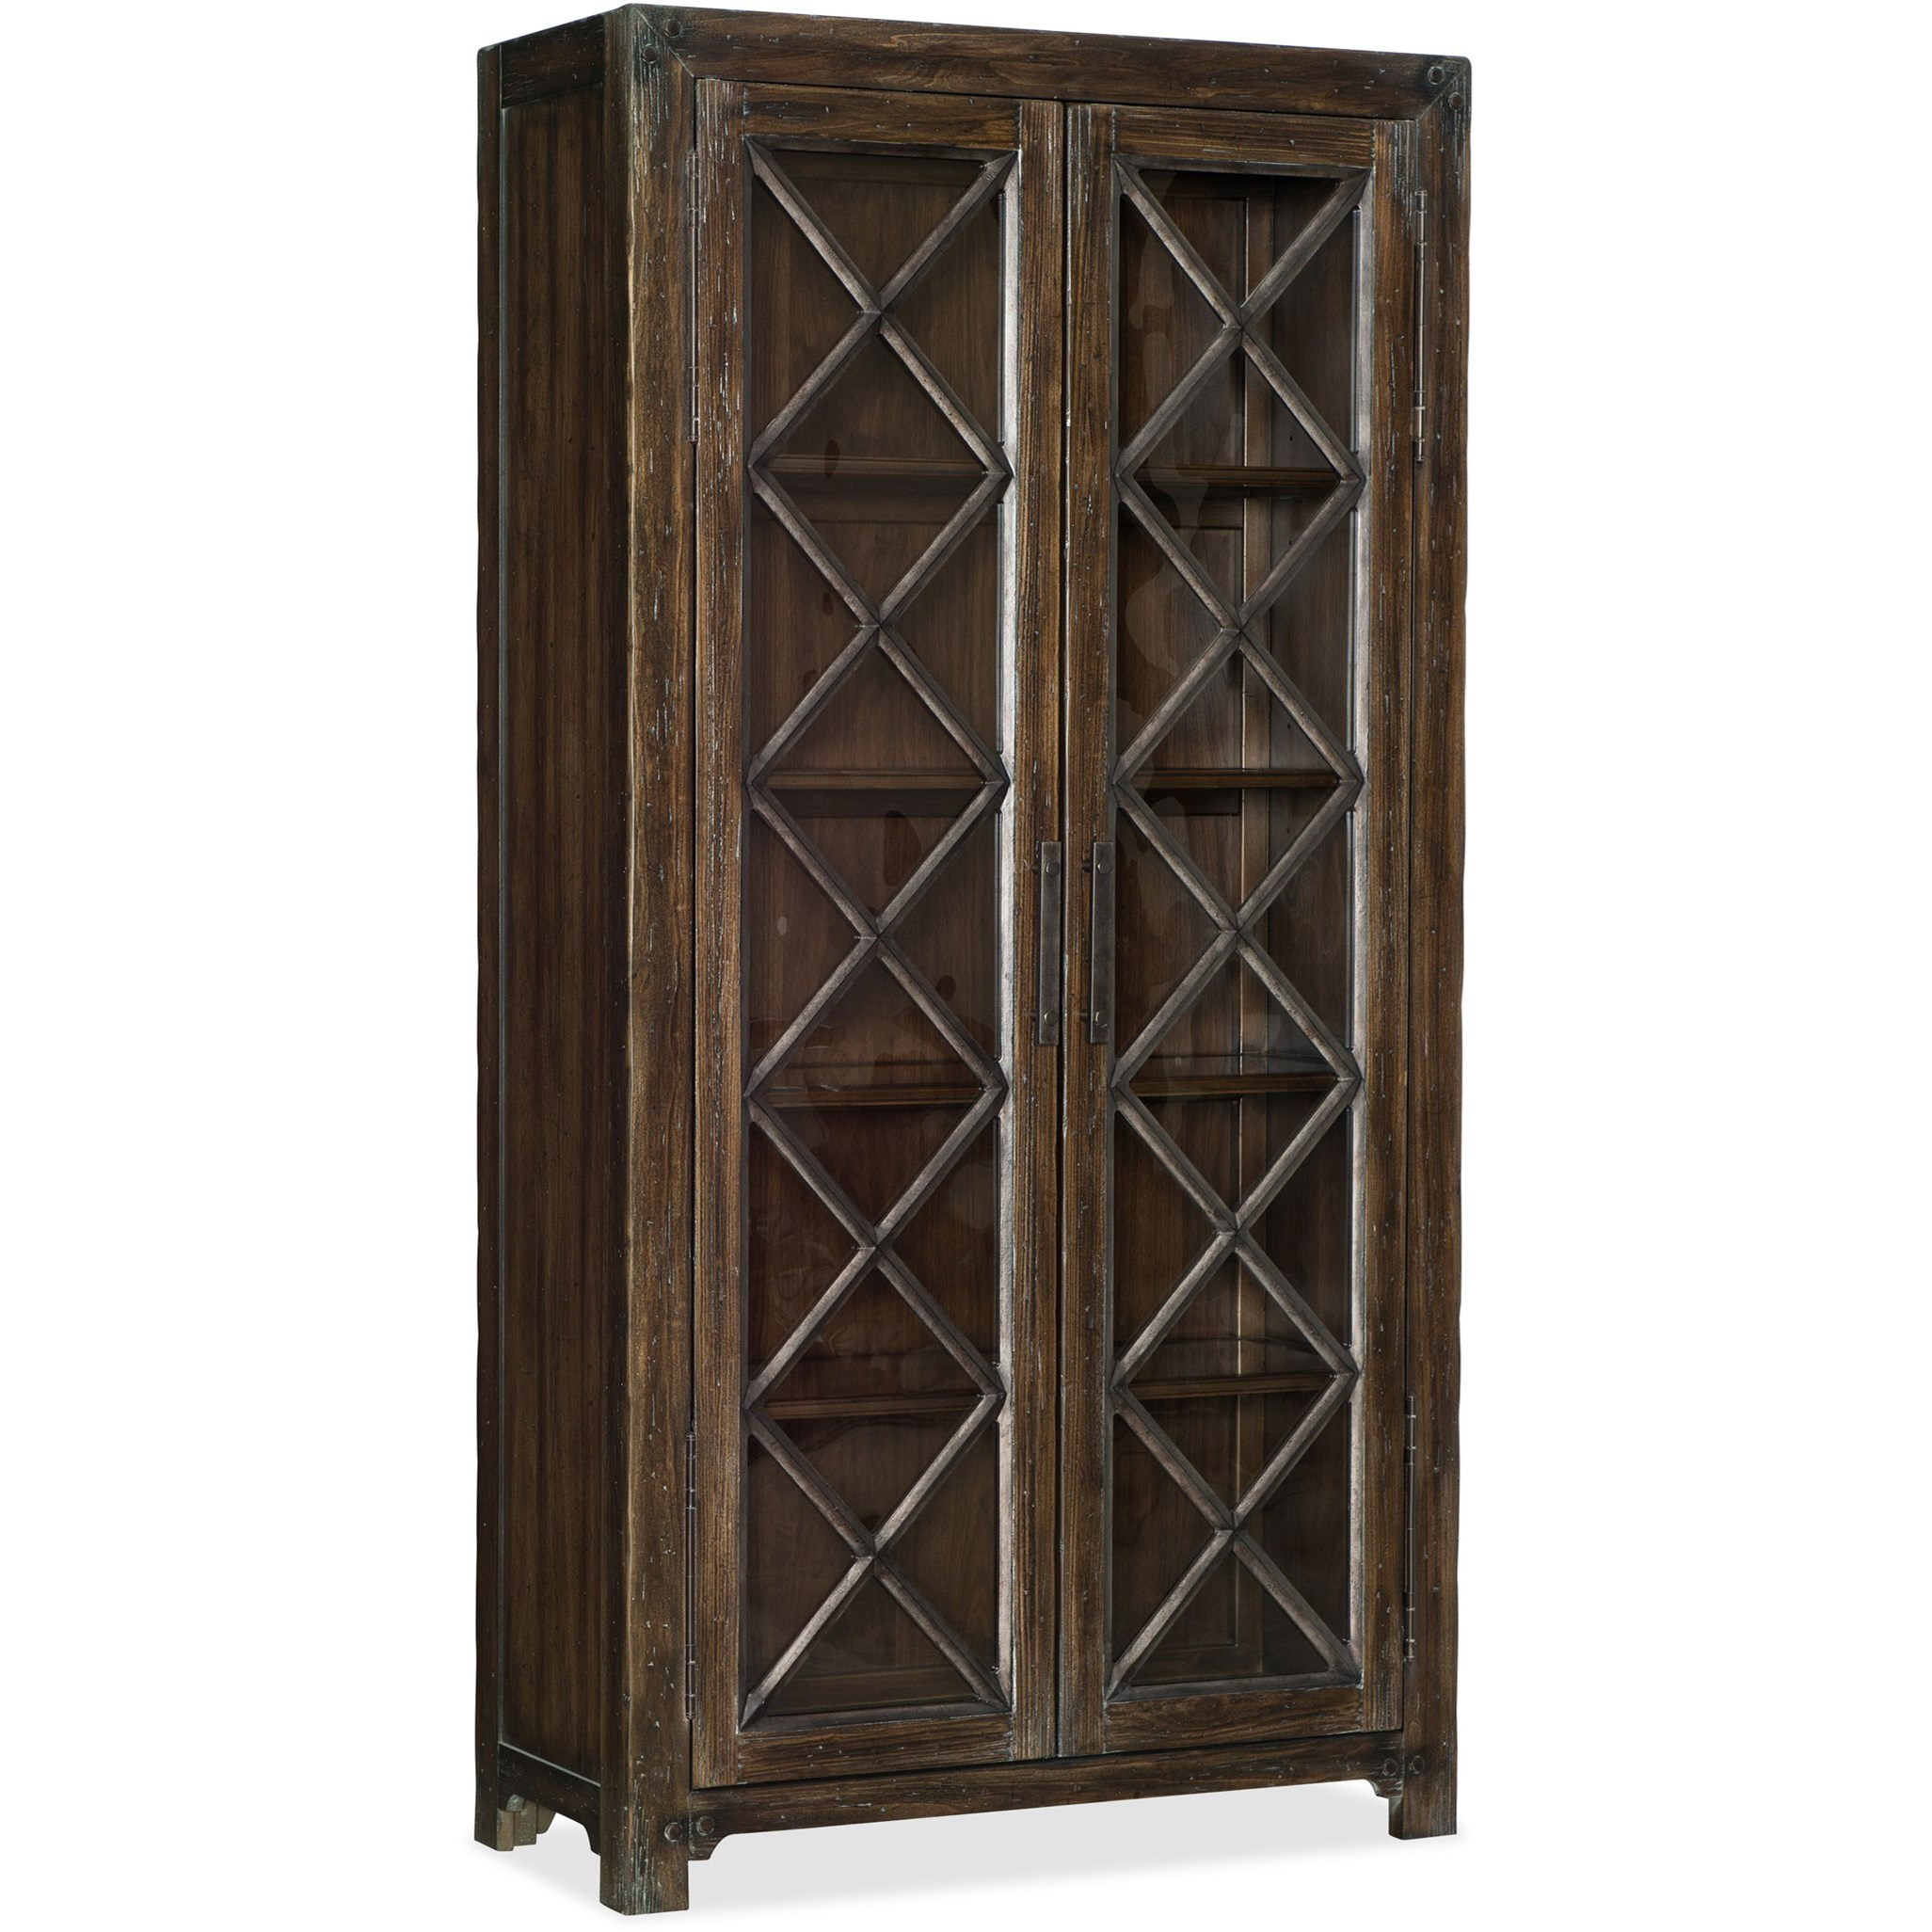 American Life - Roslyn County Bunching Display Cabinet by Hooker Furniture at Baer's Furniture